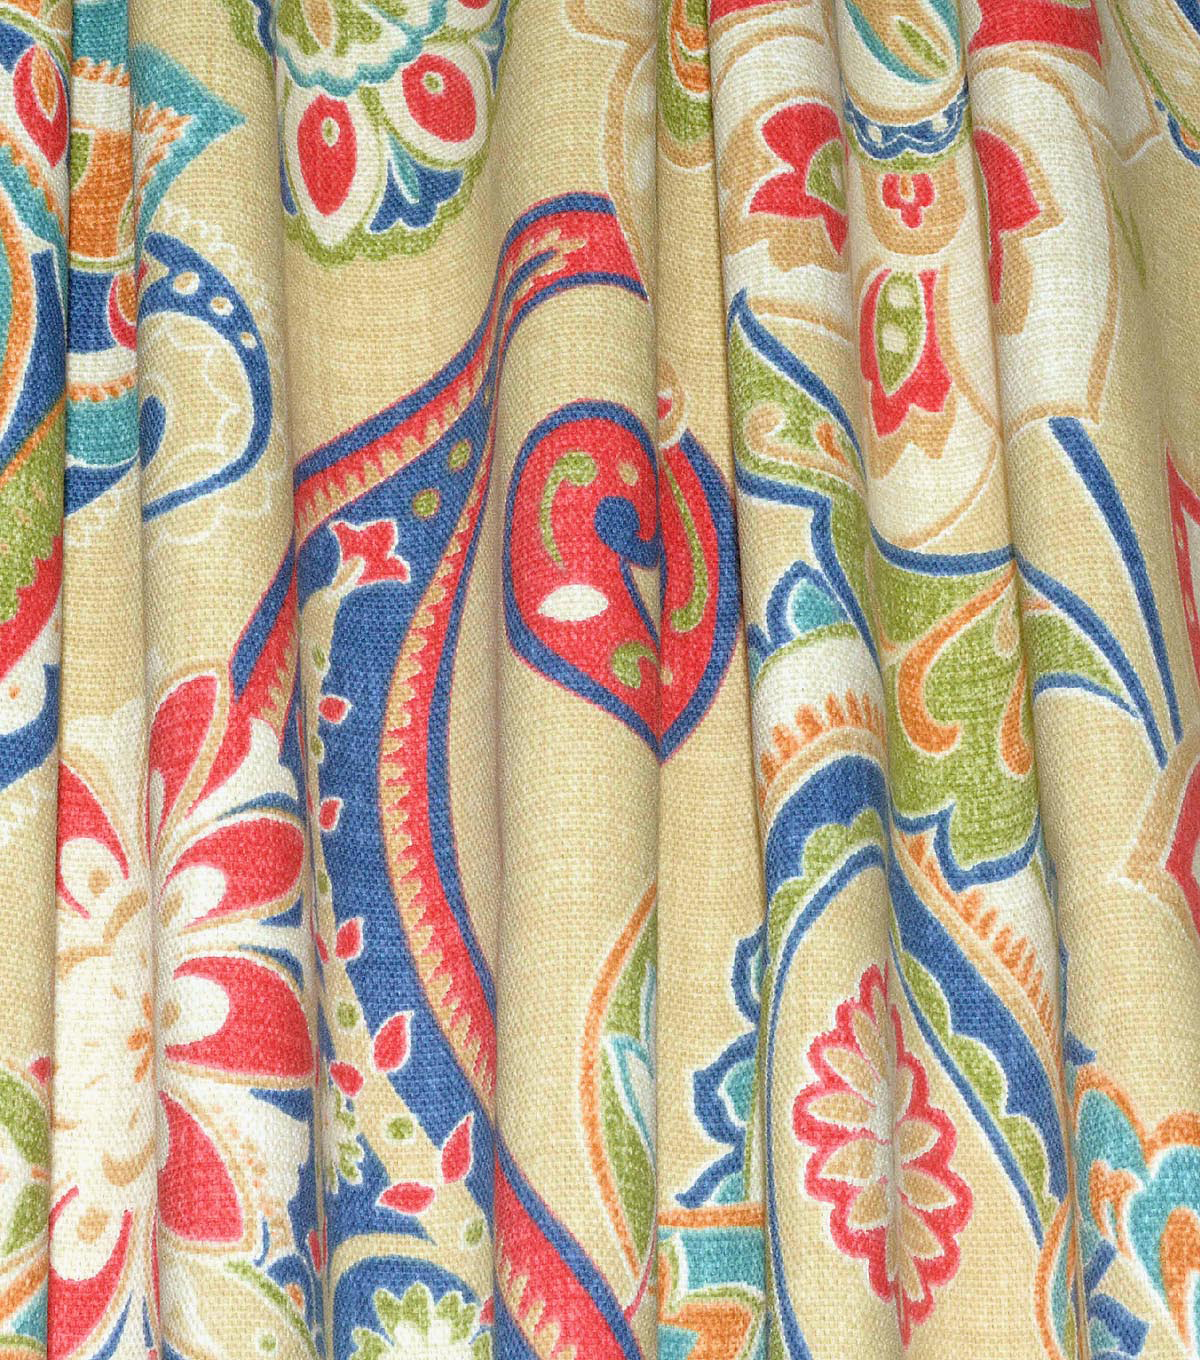 Waverly Upholstery Fabric 13x13\u0022 Swatch-Wild Card Bluebell